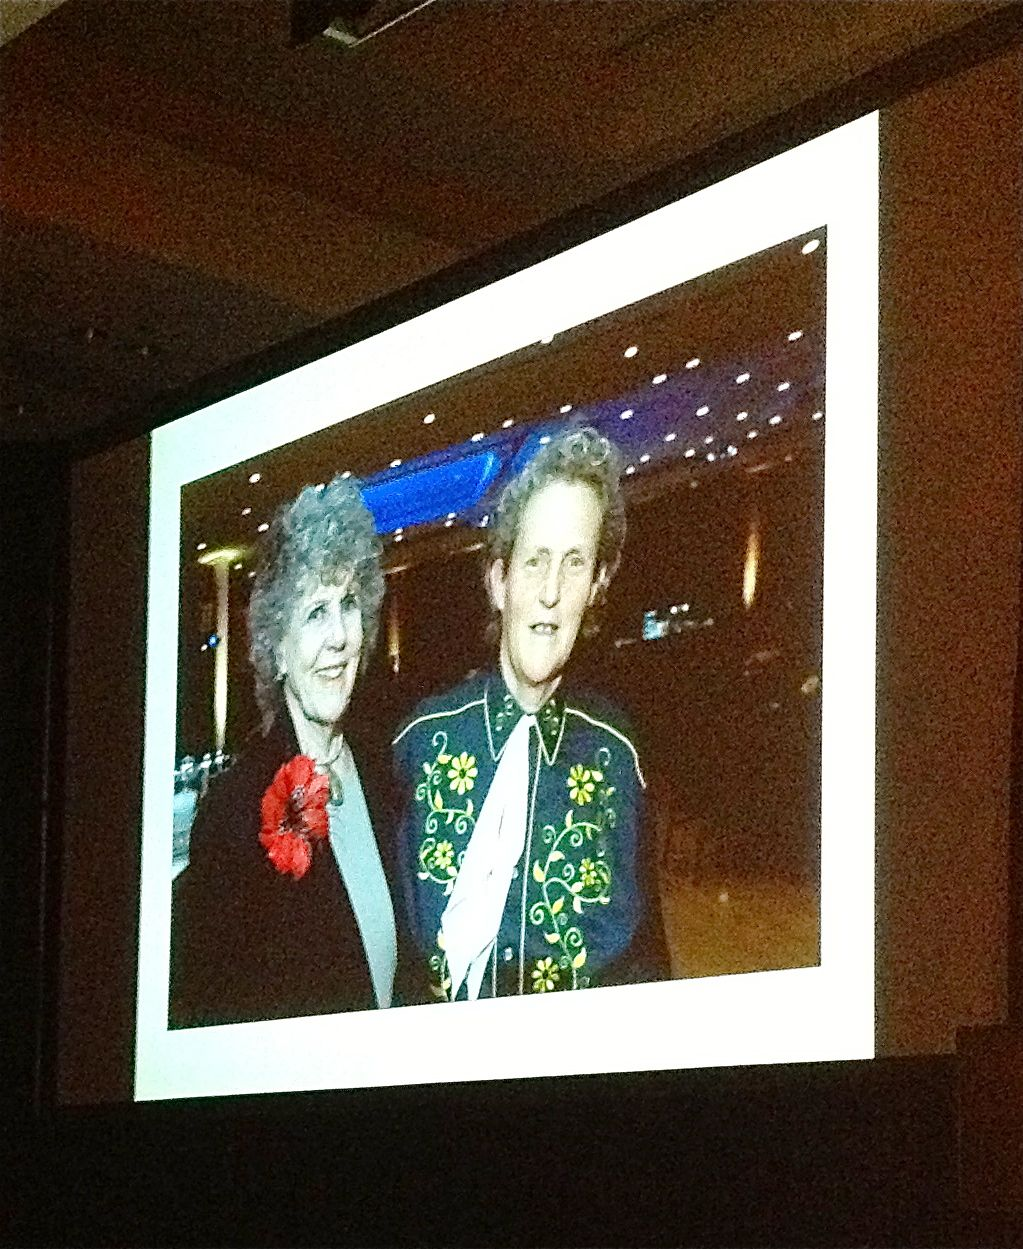 Mother of Temple Grandin criticised for linking viewing child pornography with Autism